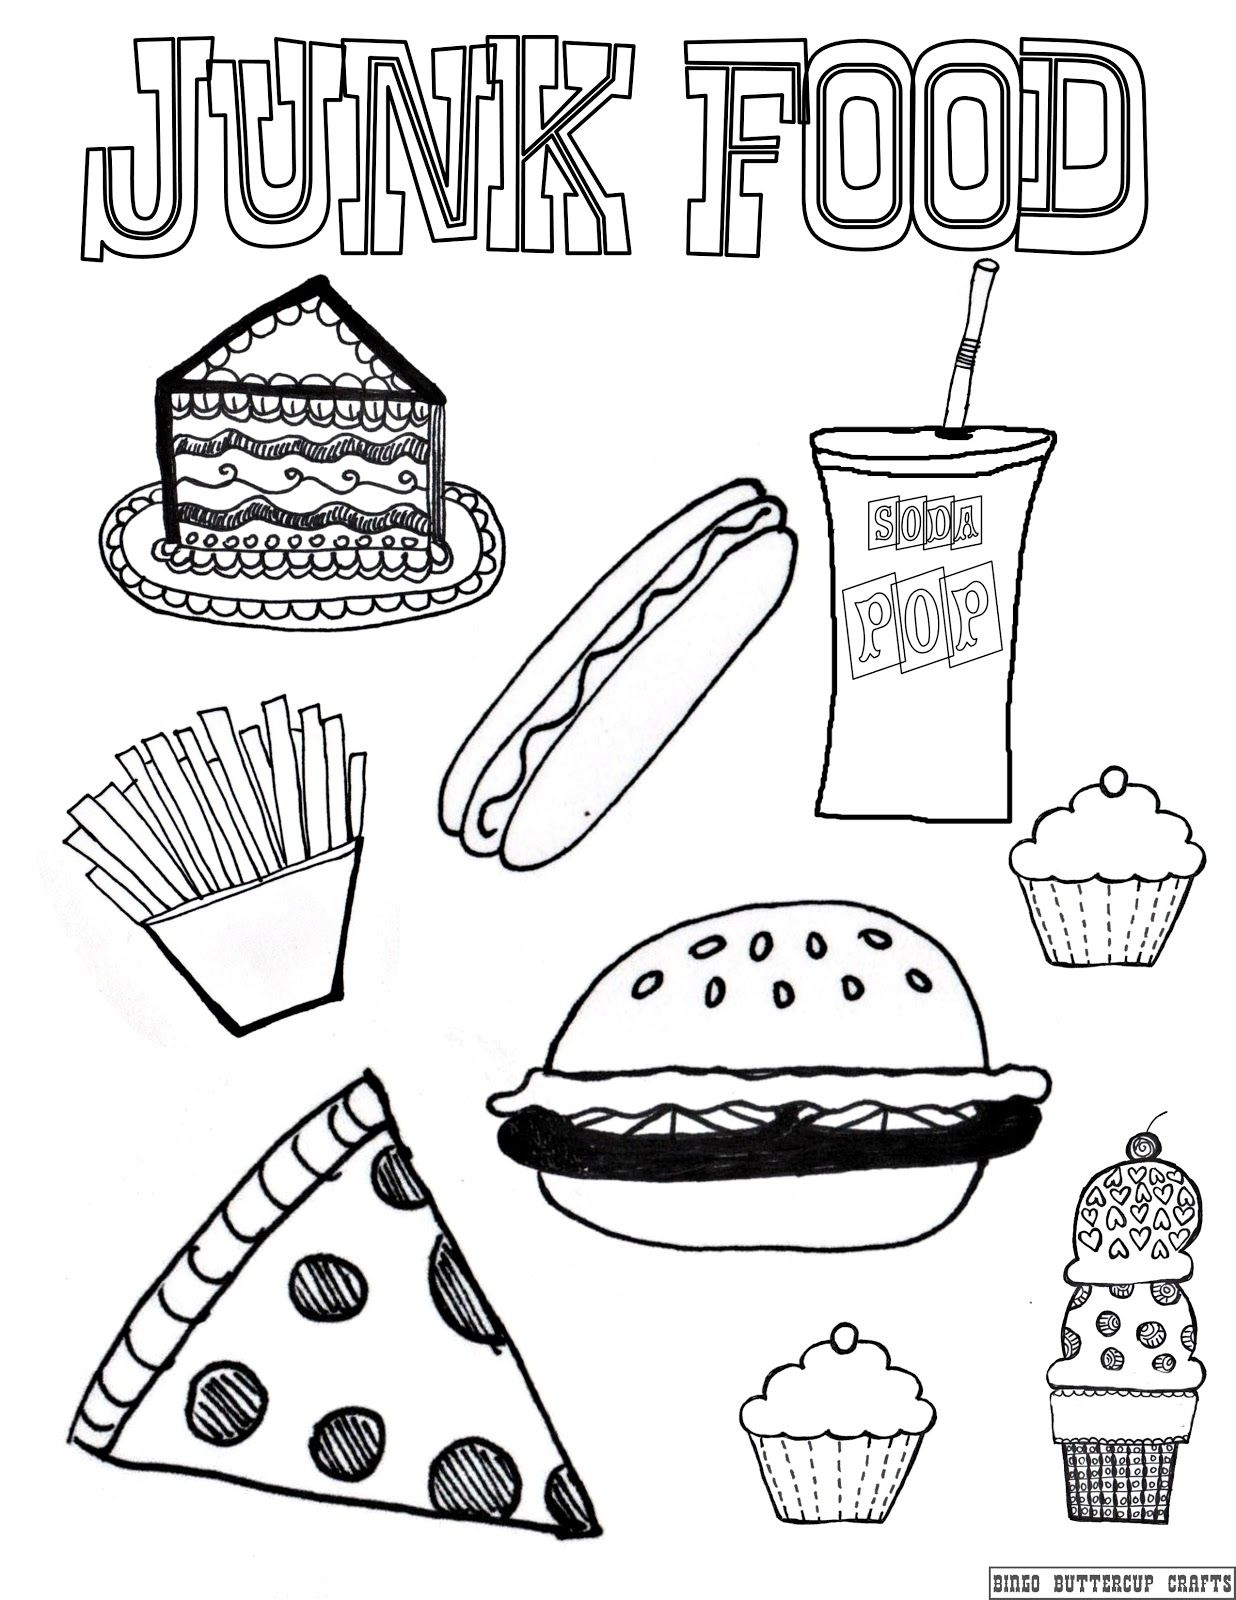 Printable coloring pages healthy habits - Junk Food Coloring Page